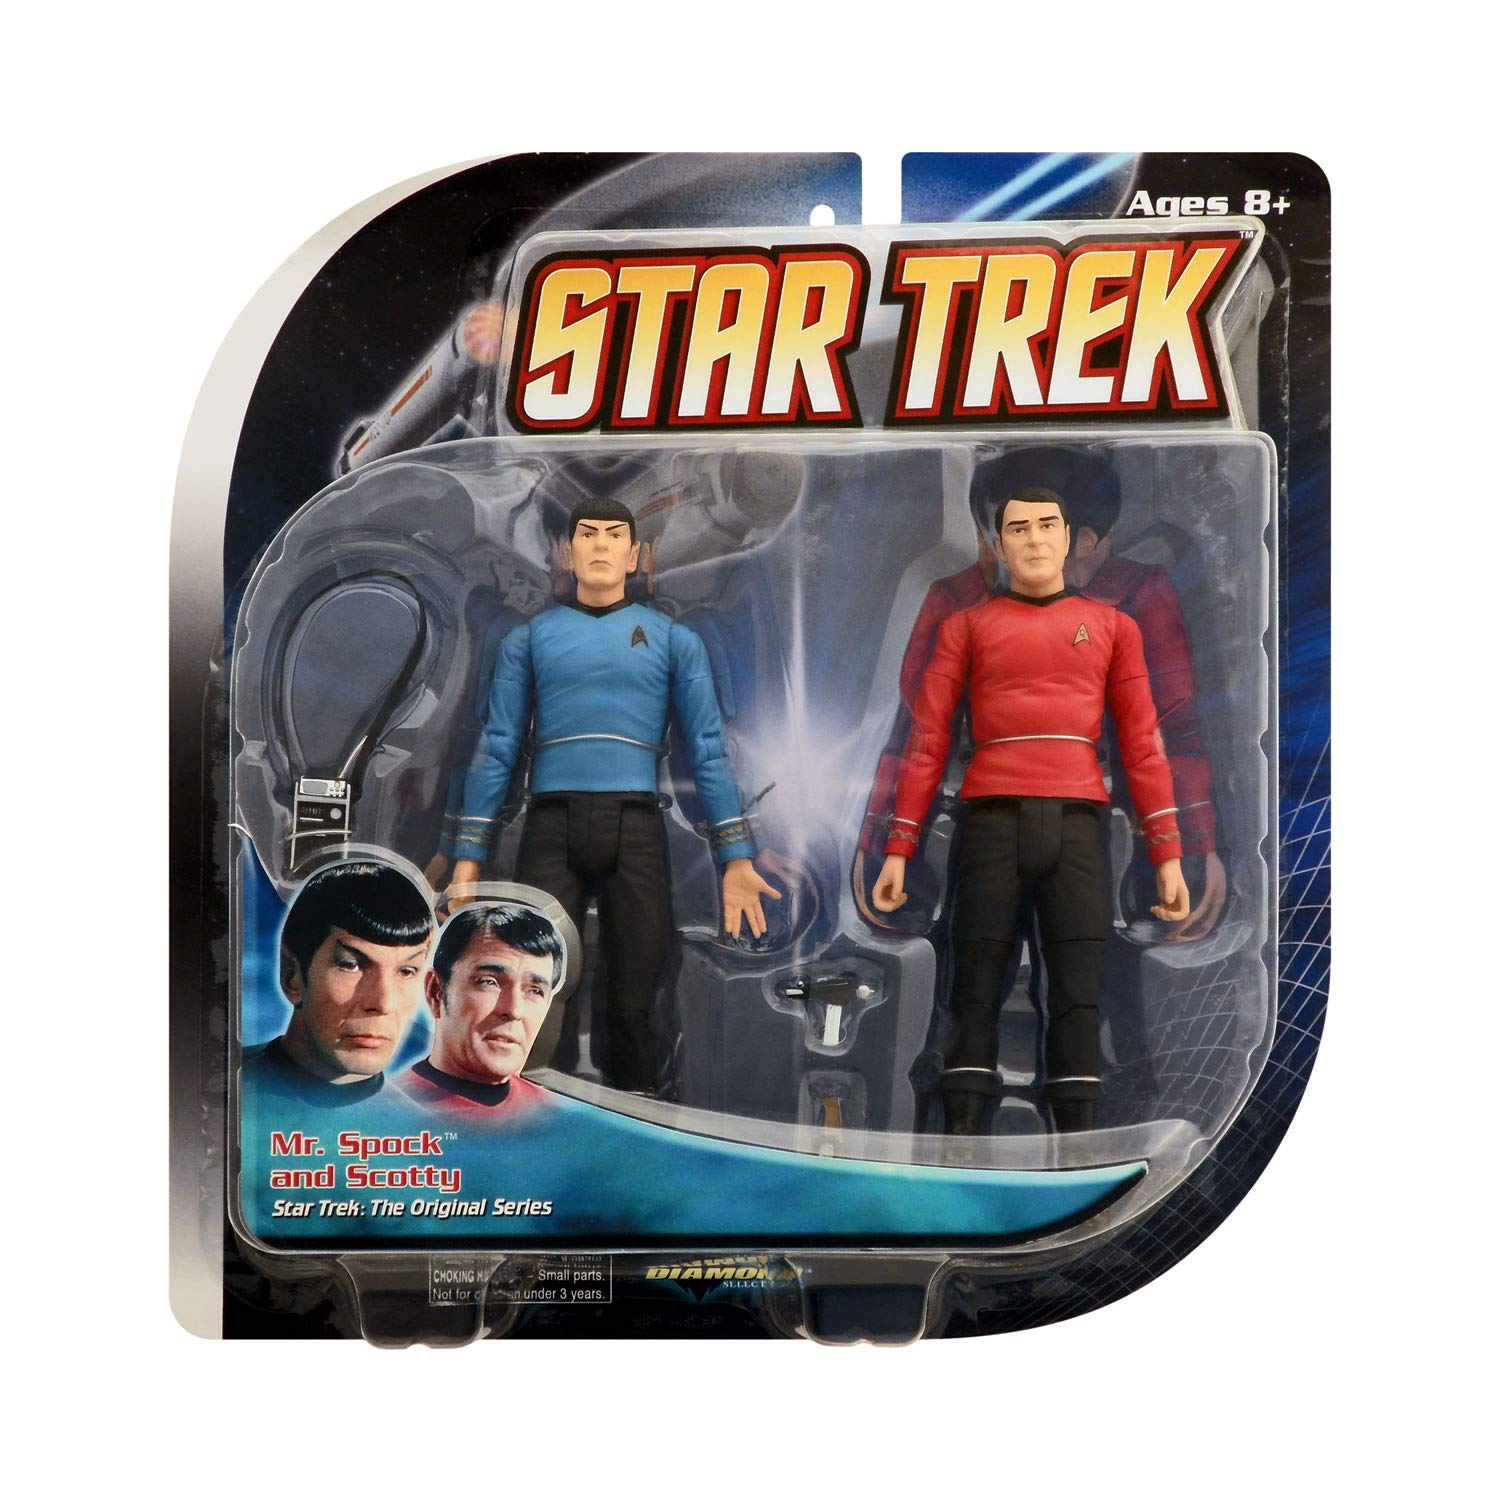 STAR TREK Figure 2 Pack - Spock & Scotty: Amazon.es: Juguetes y juegos